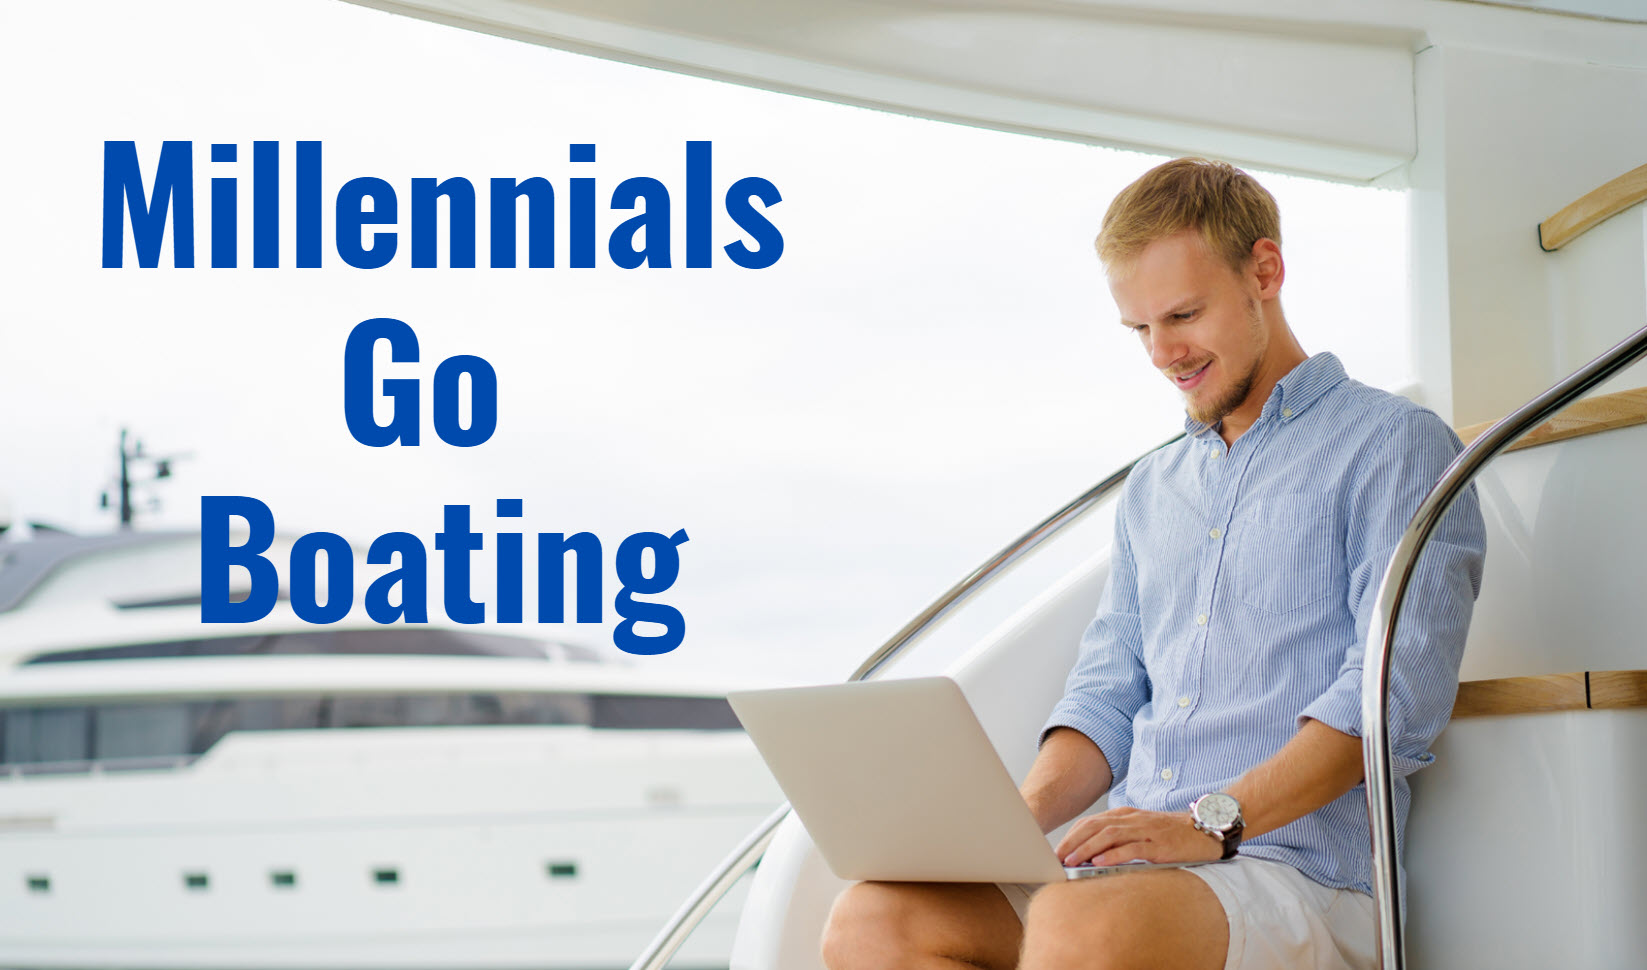 millenials go boating